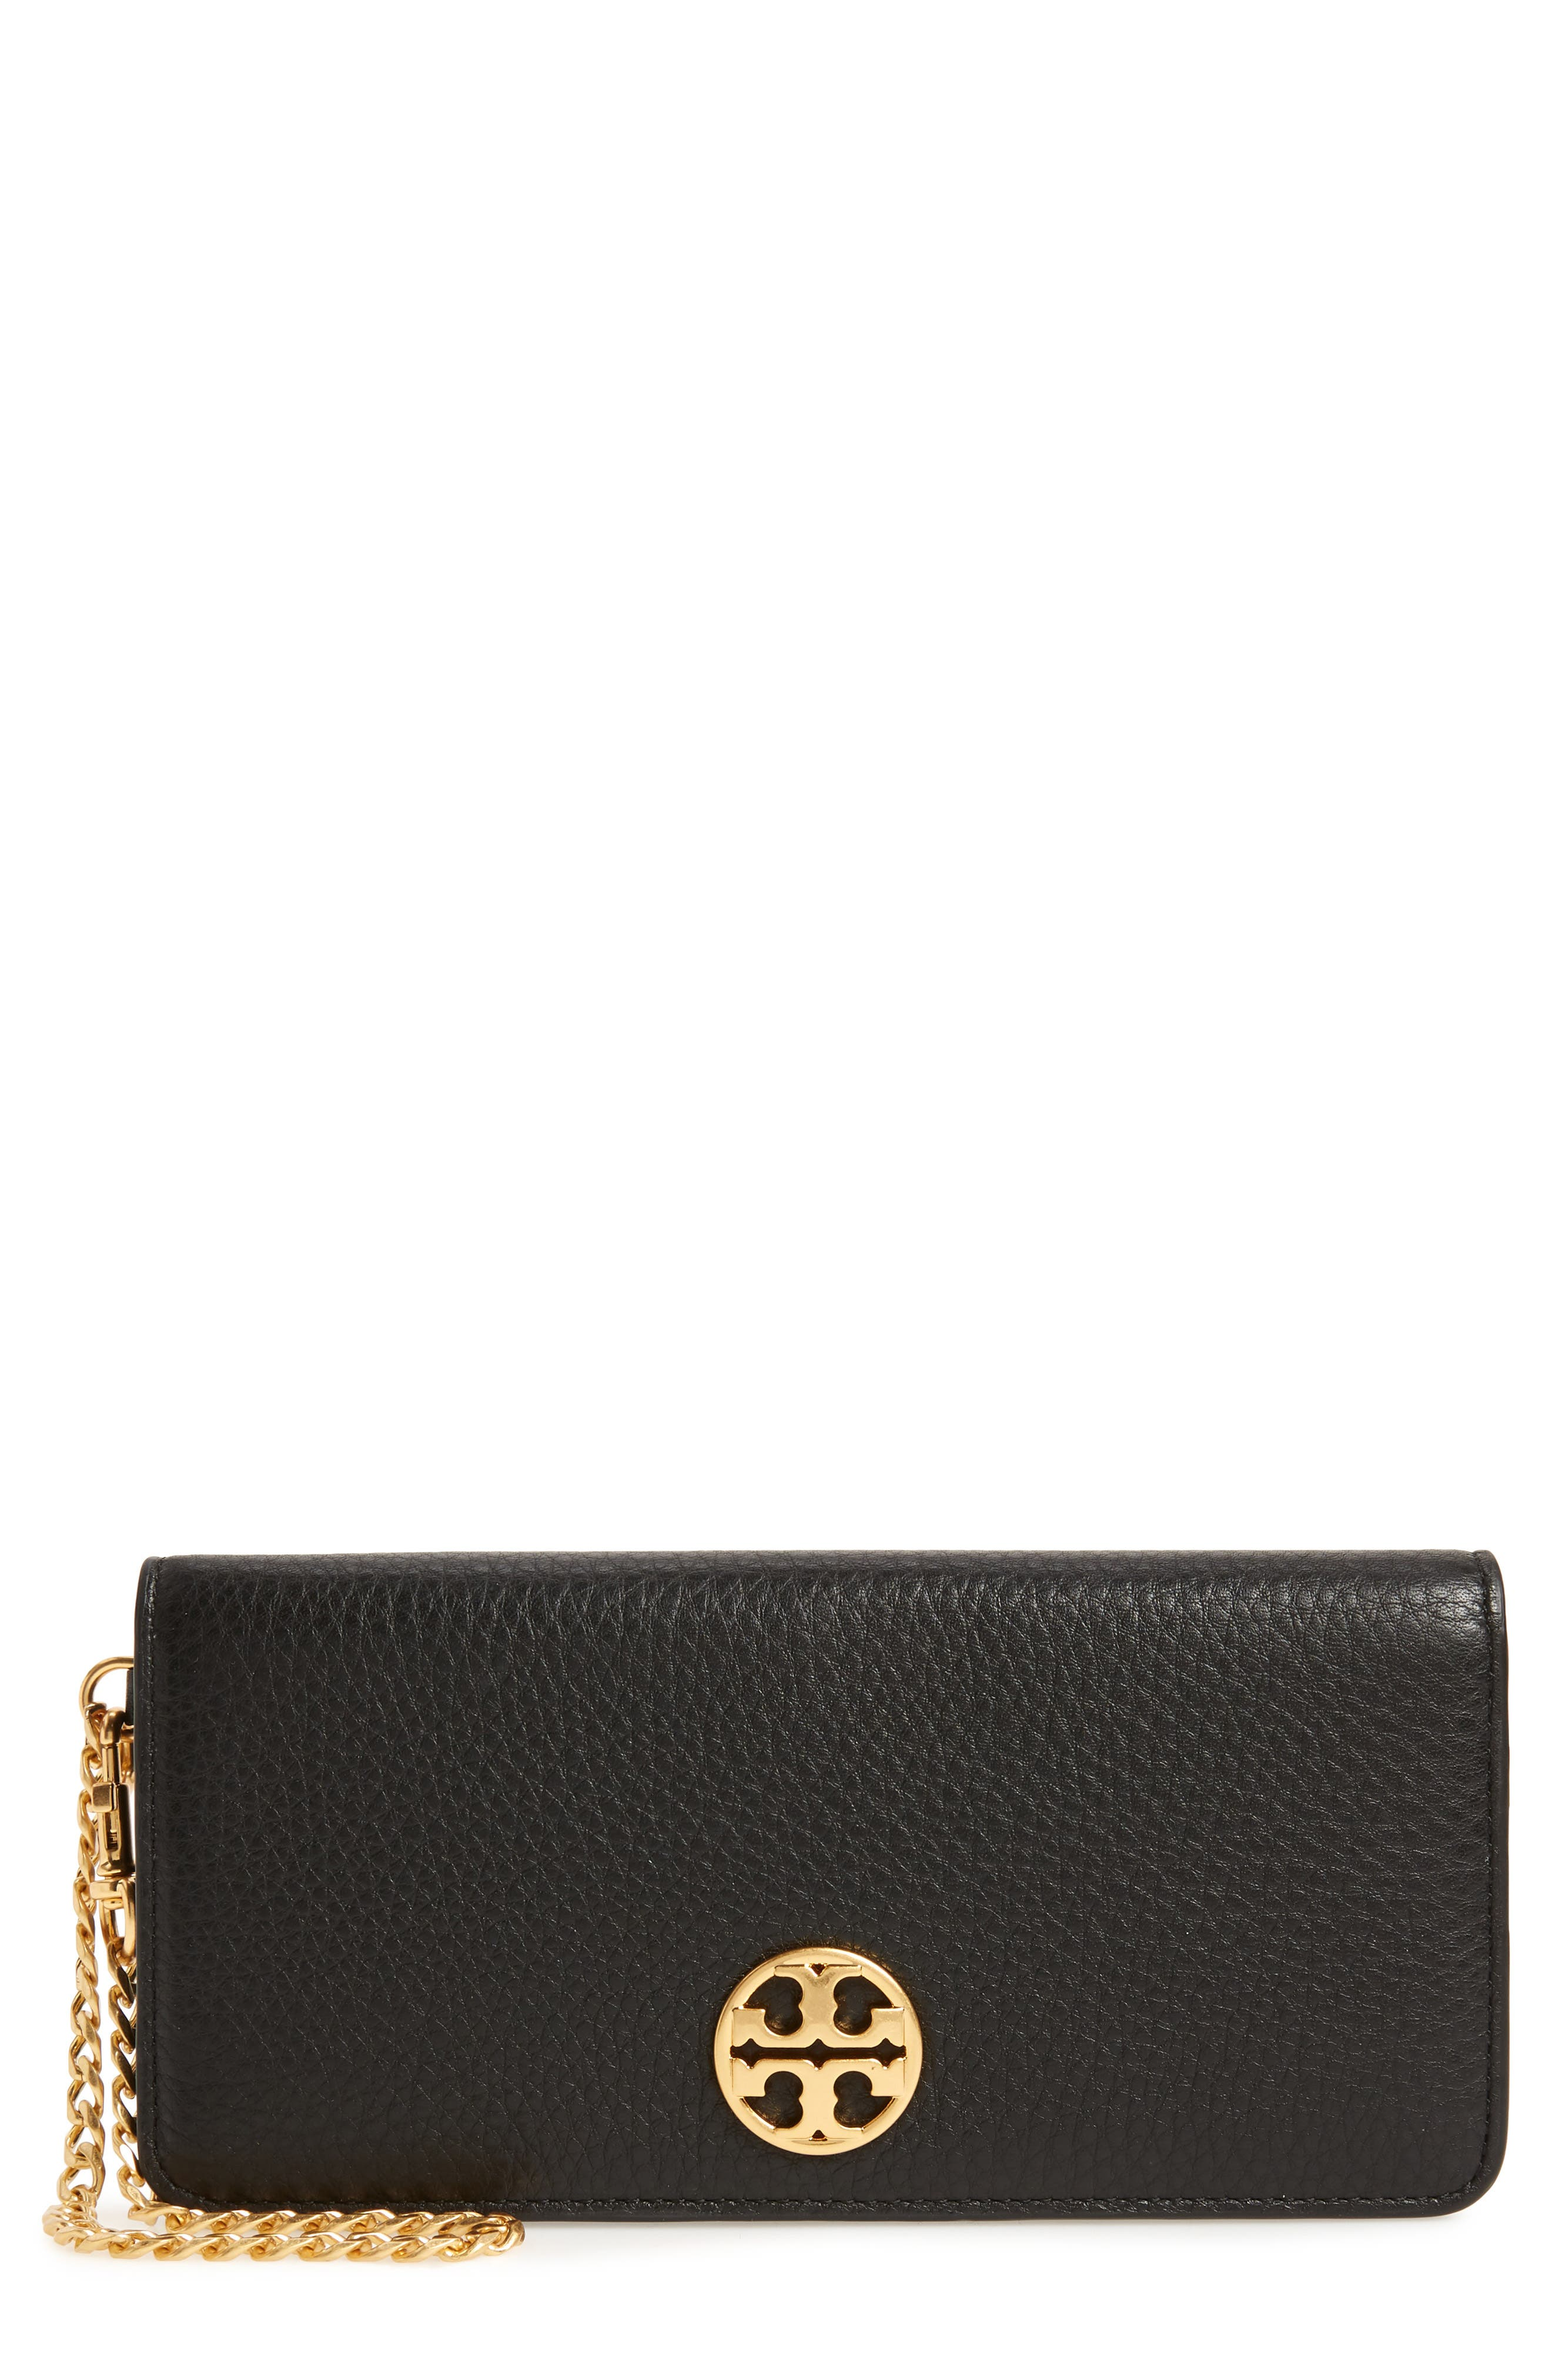 TORY BURCH,                             Chelsea Leather Wristlet Wallet,                             Main thumbnail 1, color,                             001